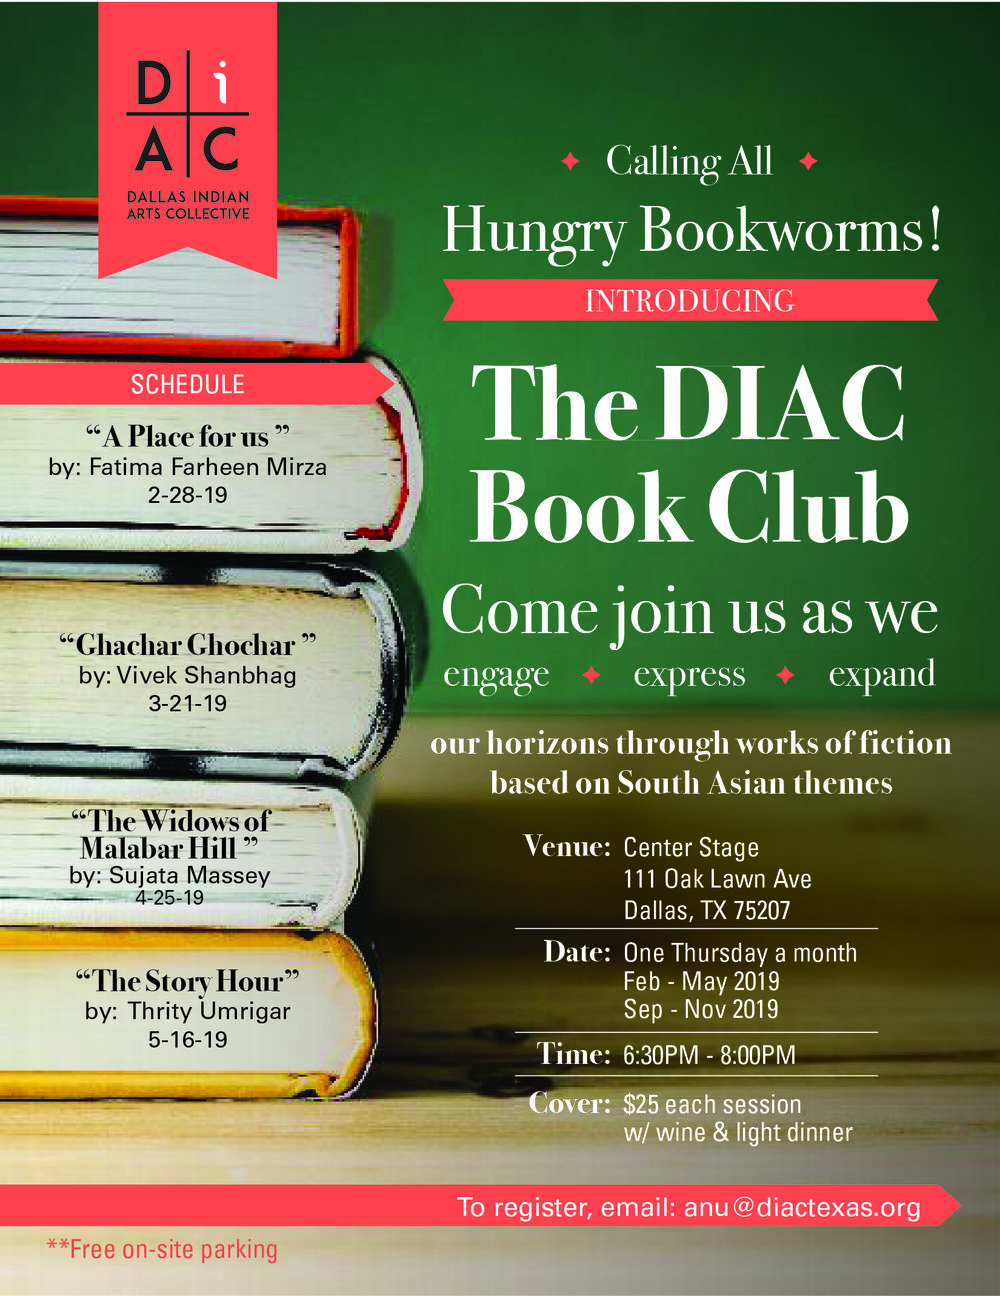 The DIAC Book Club - Calling all hungry book worms!